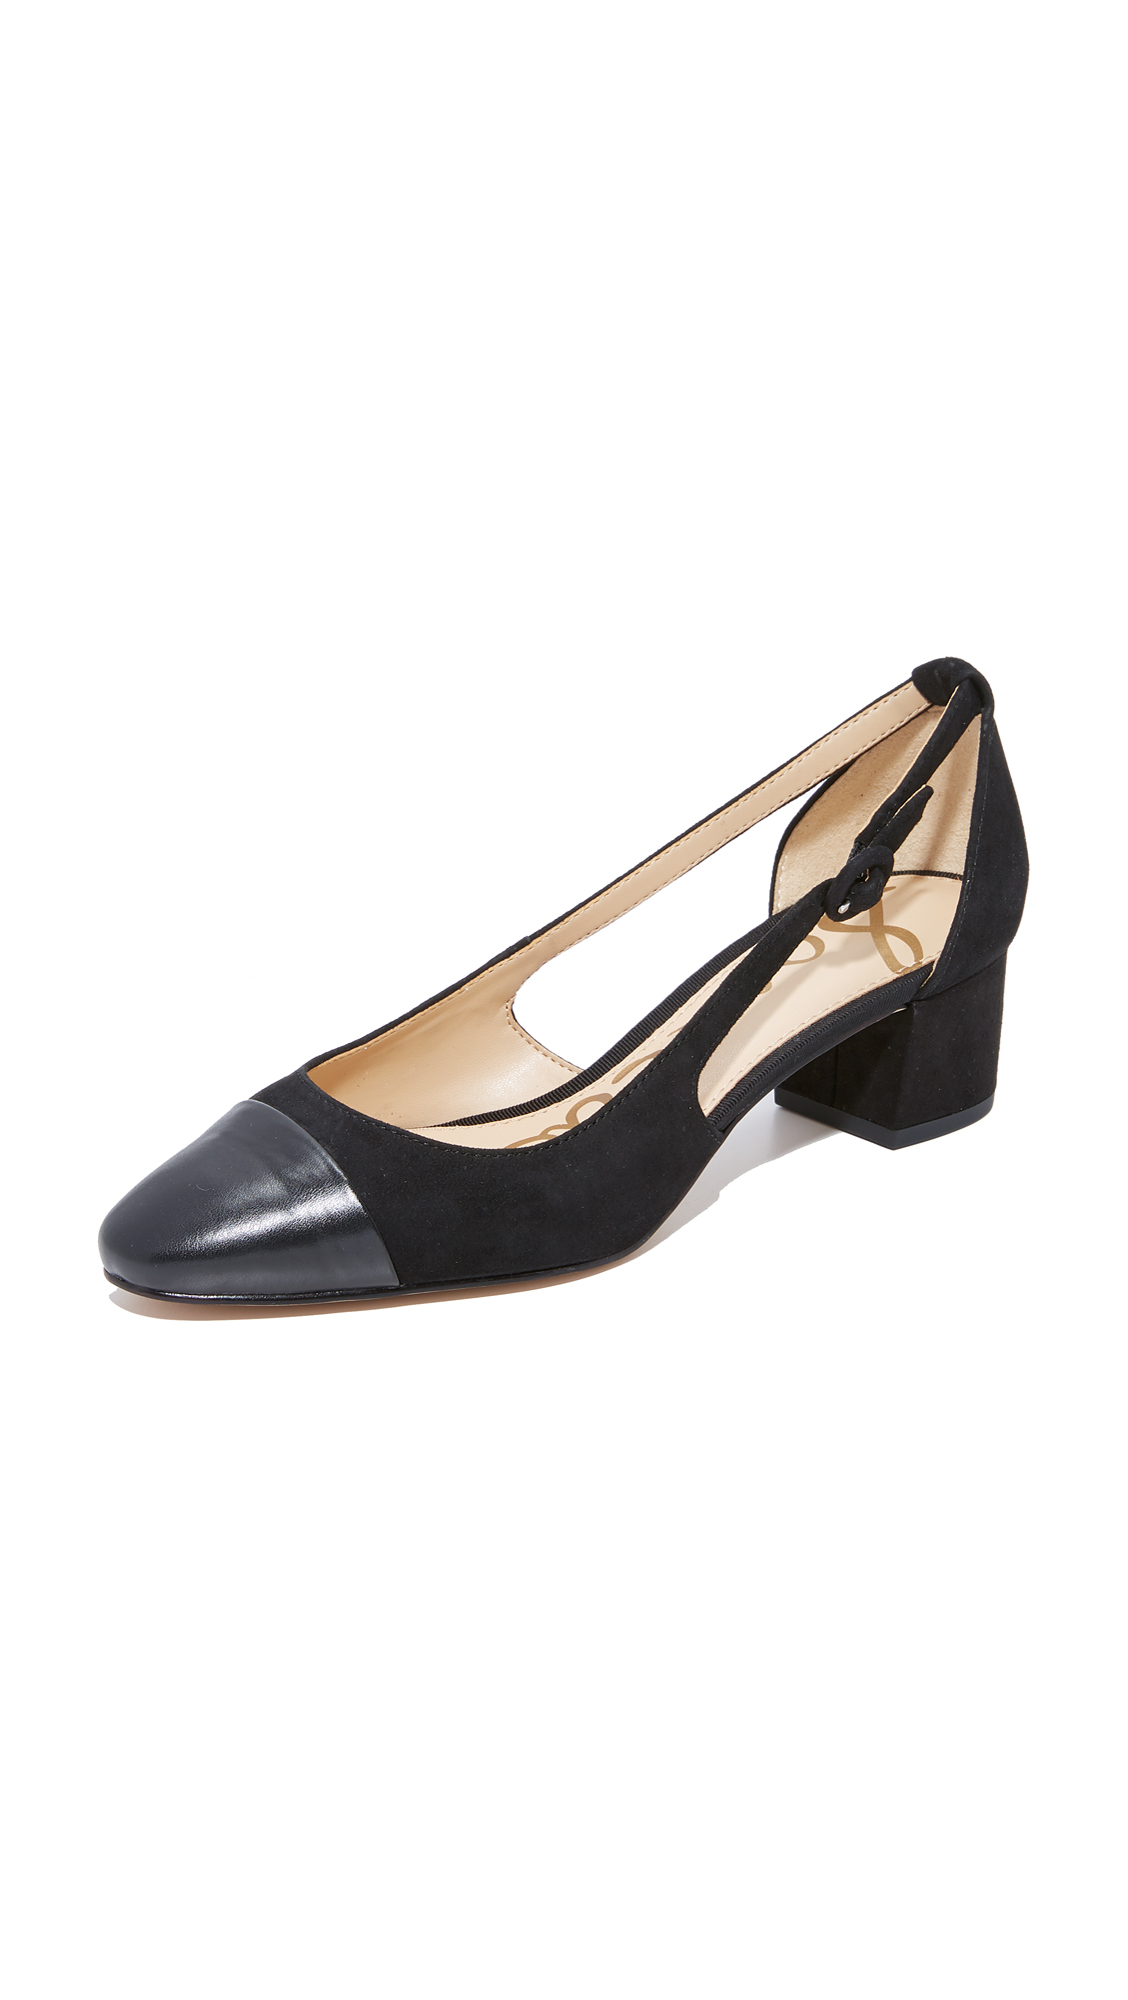 Sam Edelman Leah Cap Toe Pumps - Black